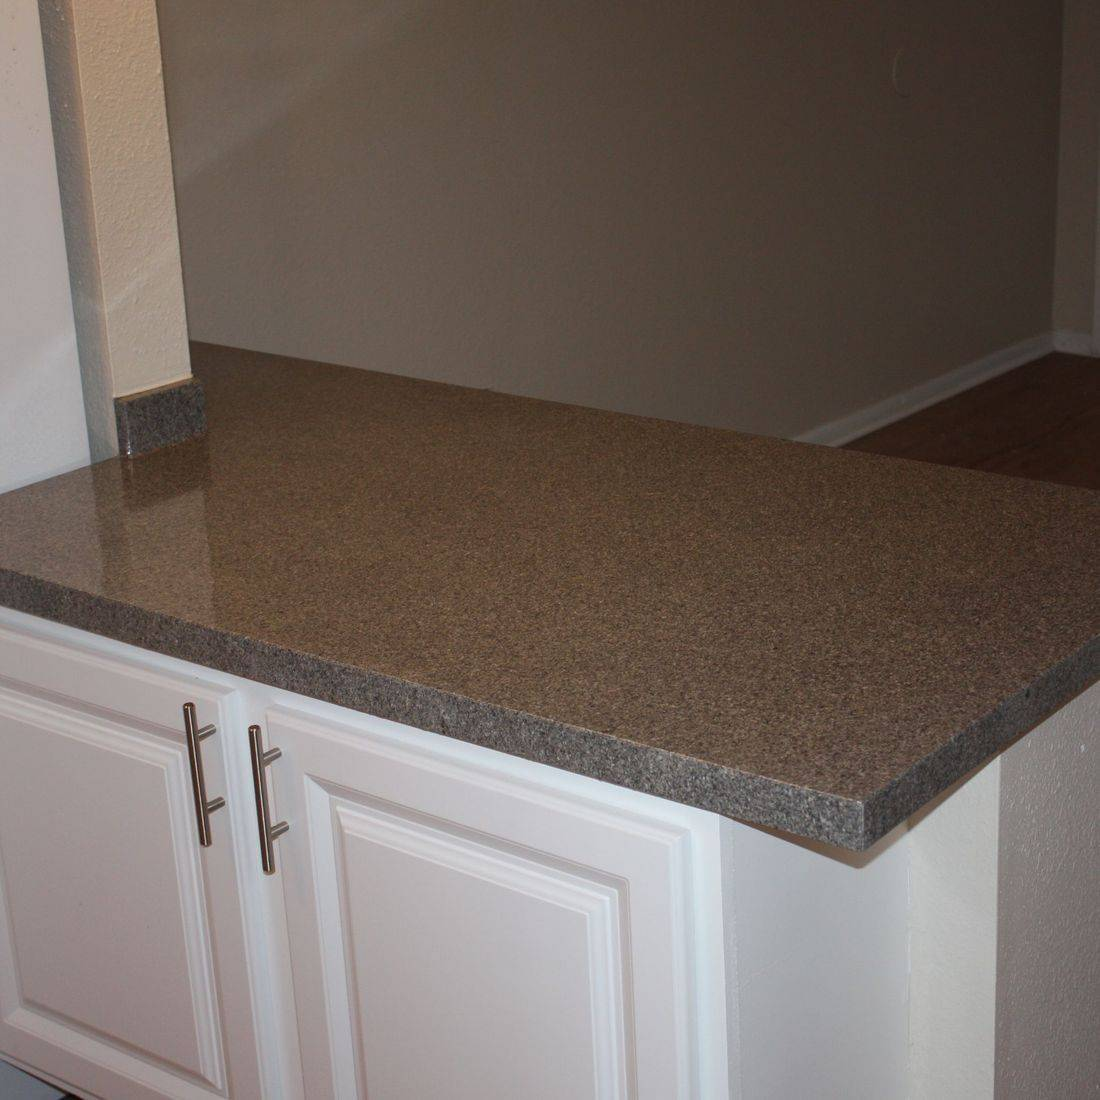 Refinished Countertop with clear gloss